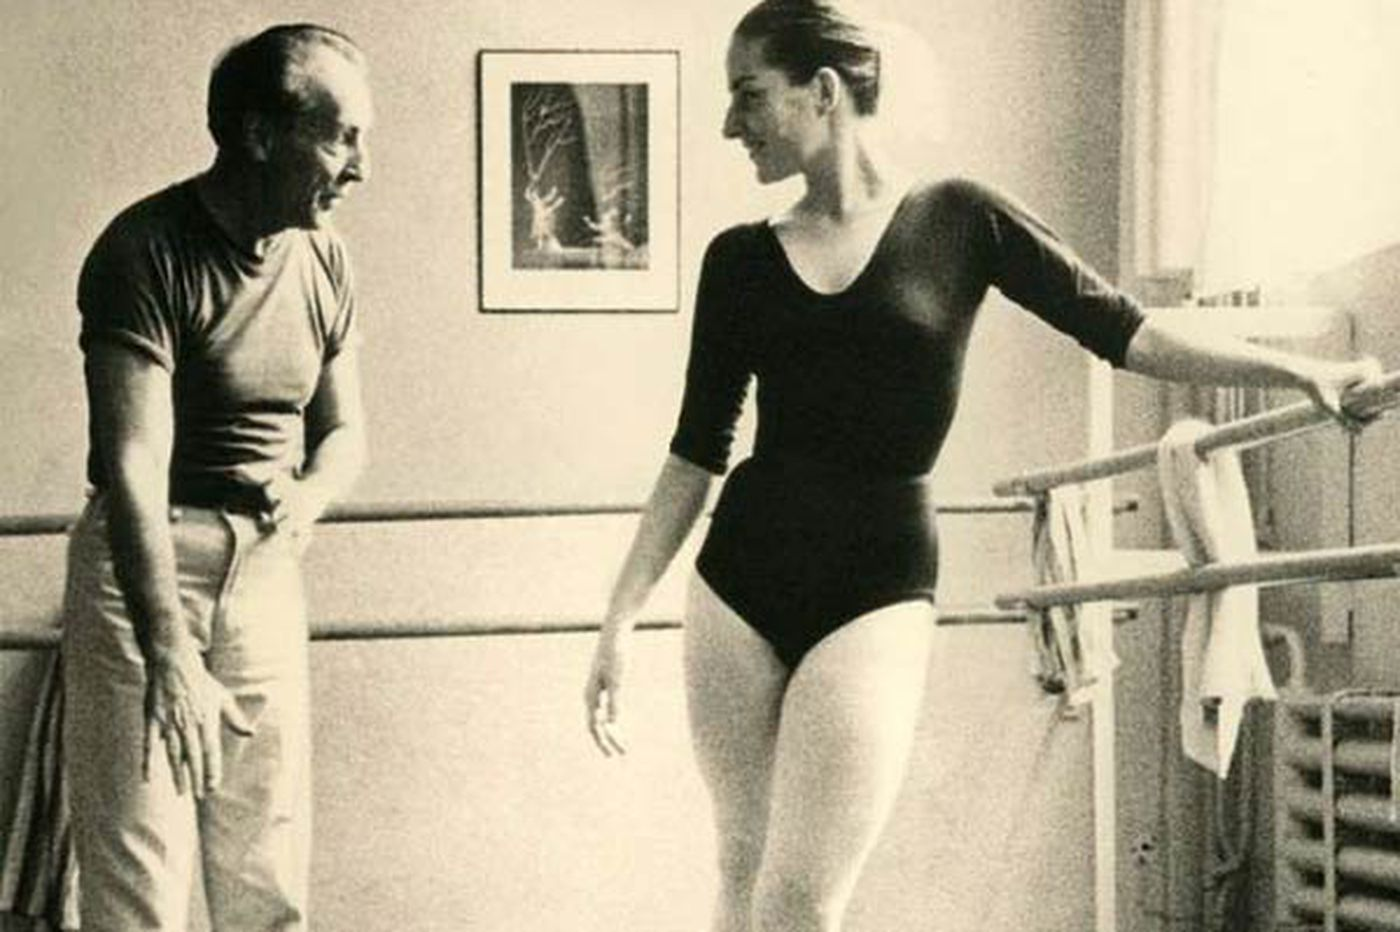 Documentary on Tanaquil Le Clercq: A dancer's life and struggle with polio